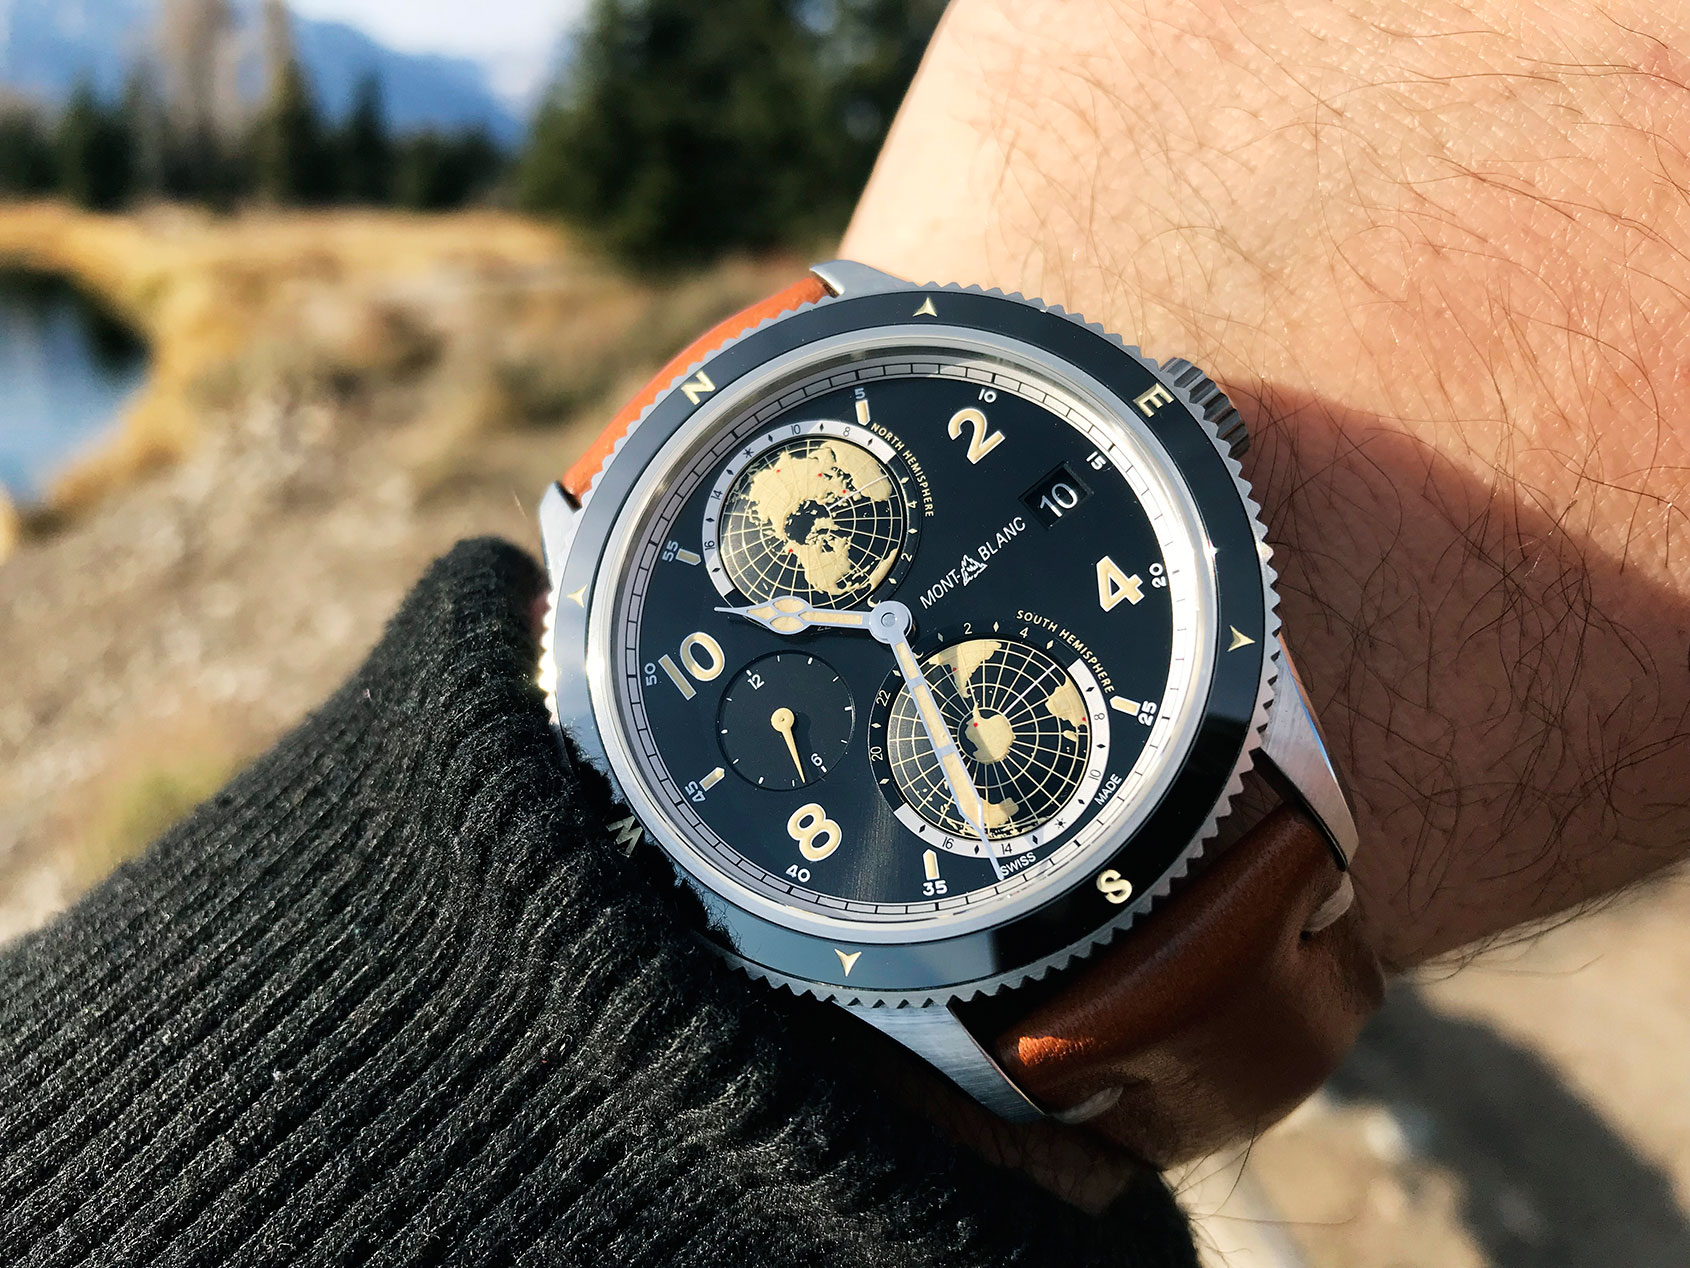 """ea676e509e1 The 1858 Geosphere offers what Montblanc say is a """"new worldtime  complication"""", which adds some geographic representation and day/night  indicator to a dual ..."""